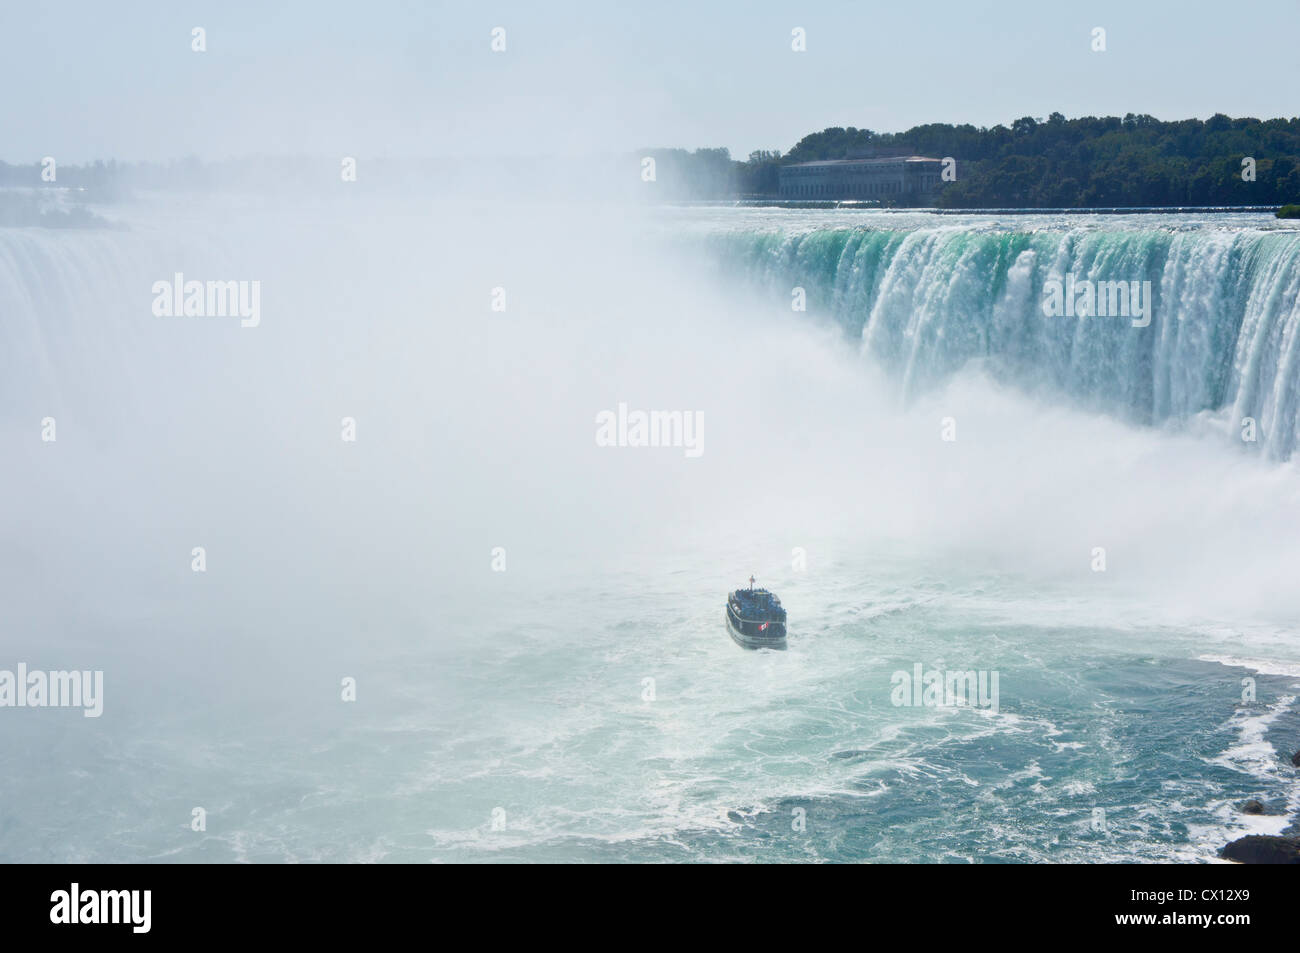 Maid of the Mist flying a Canadian flag at the Horseshoe end of Niagara Falls loaded with tourists dressed in blue - Stock Image